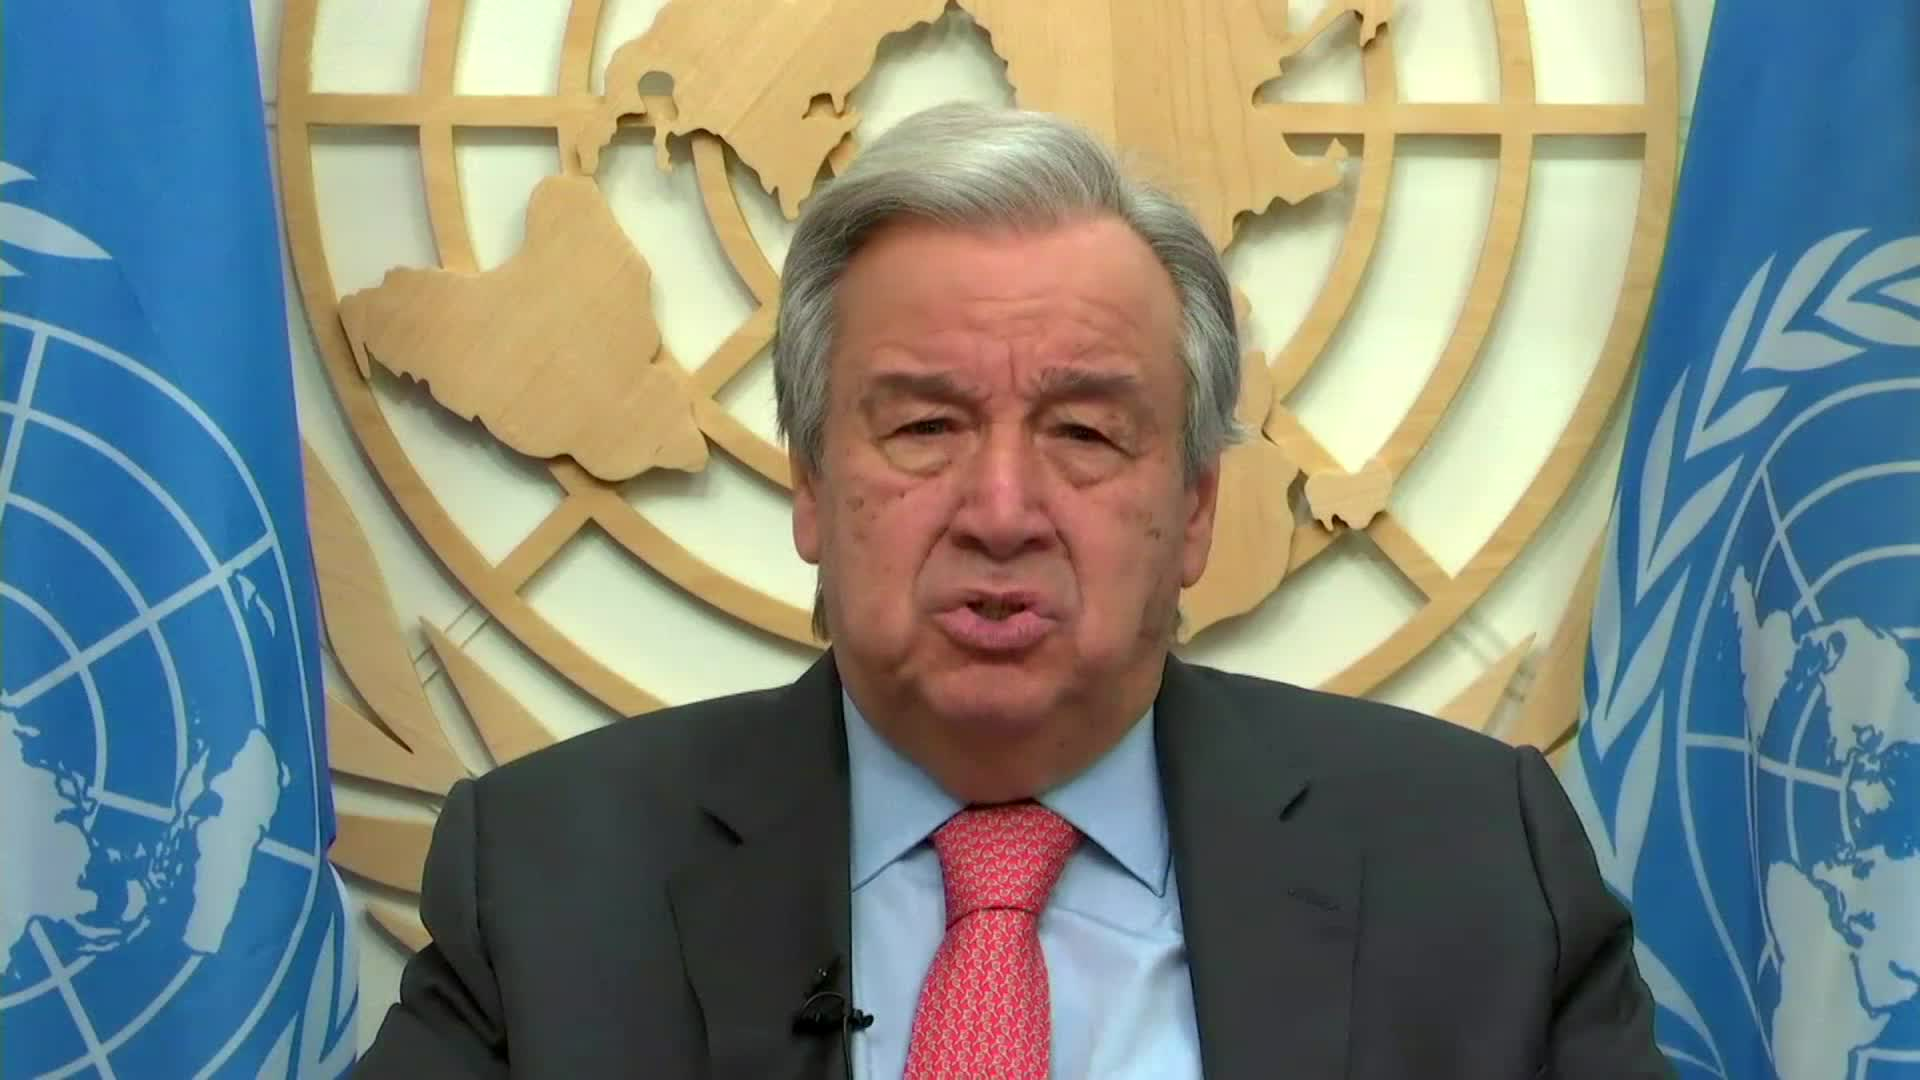 UN Secretary GeneralAntónio Guterres speaks in a video message on January 15.